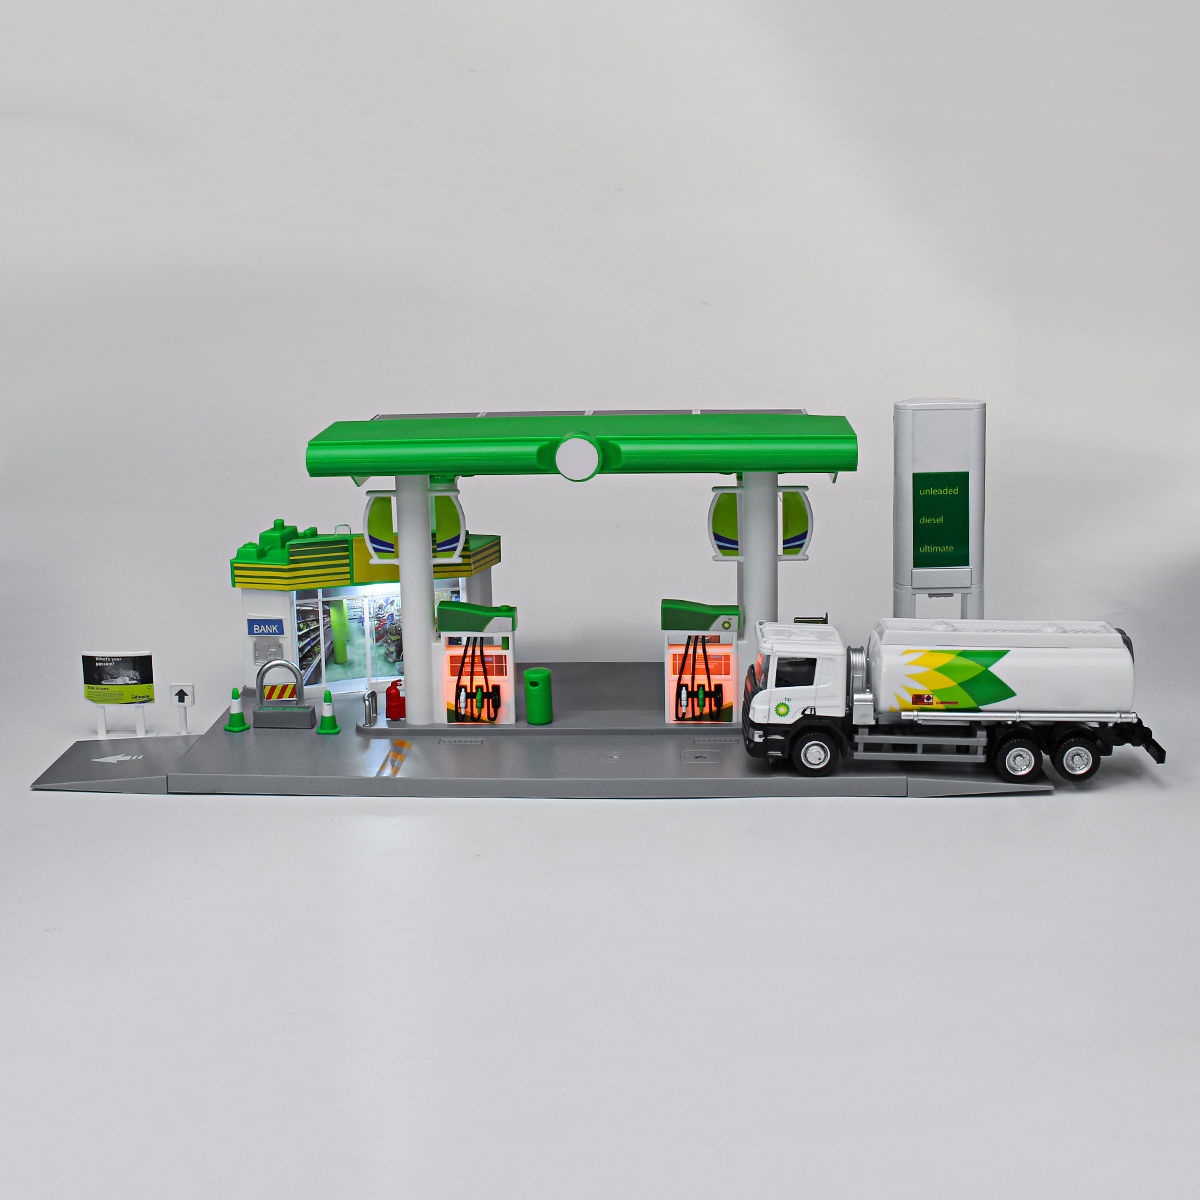 Children Simulation Gas Station Scene Model Toys With Sound Light Kids Xmas Gift